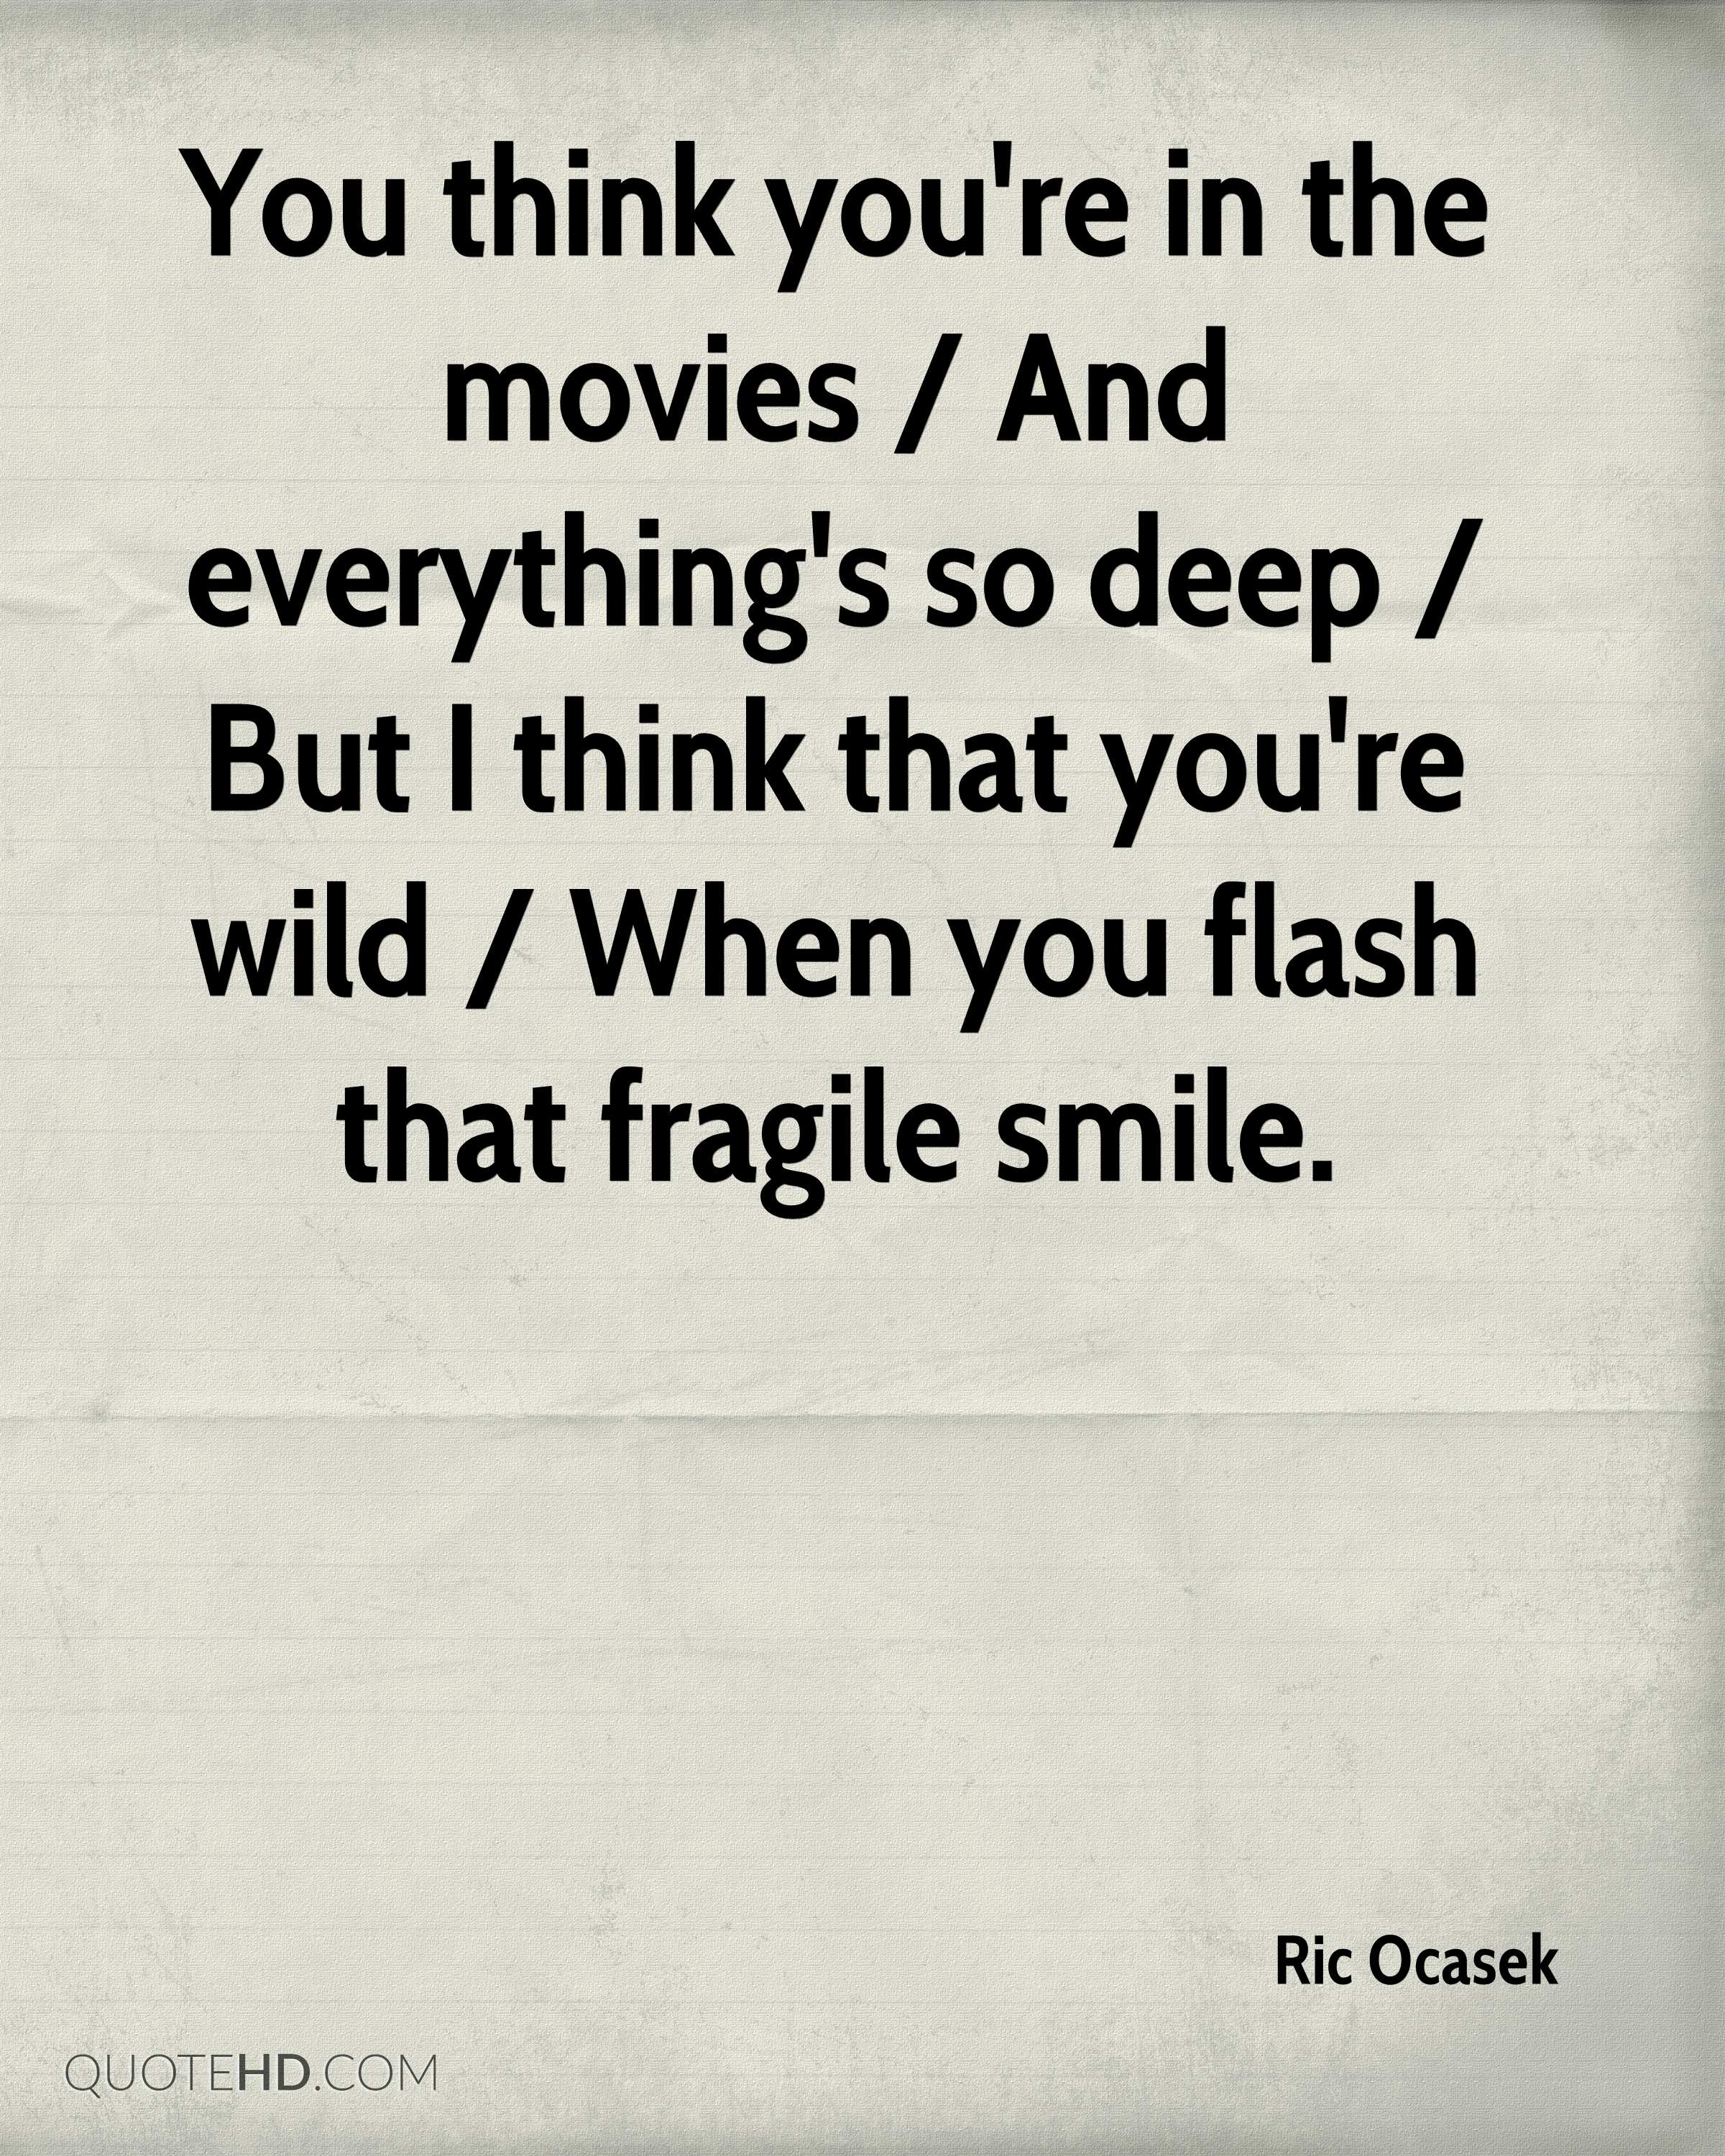 You think you're in the movies / And everything's so deep / But I think that you're wild / When you flash that fragile smile.